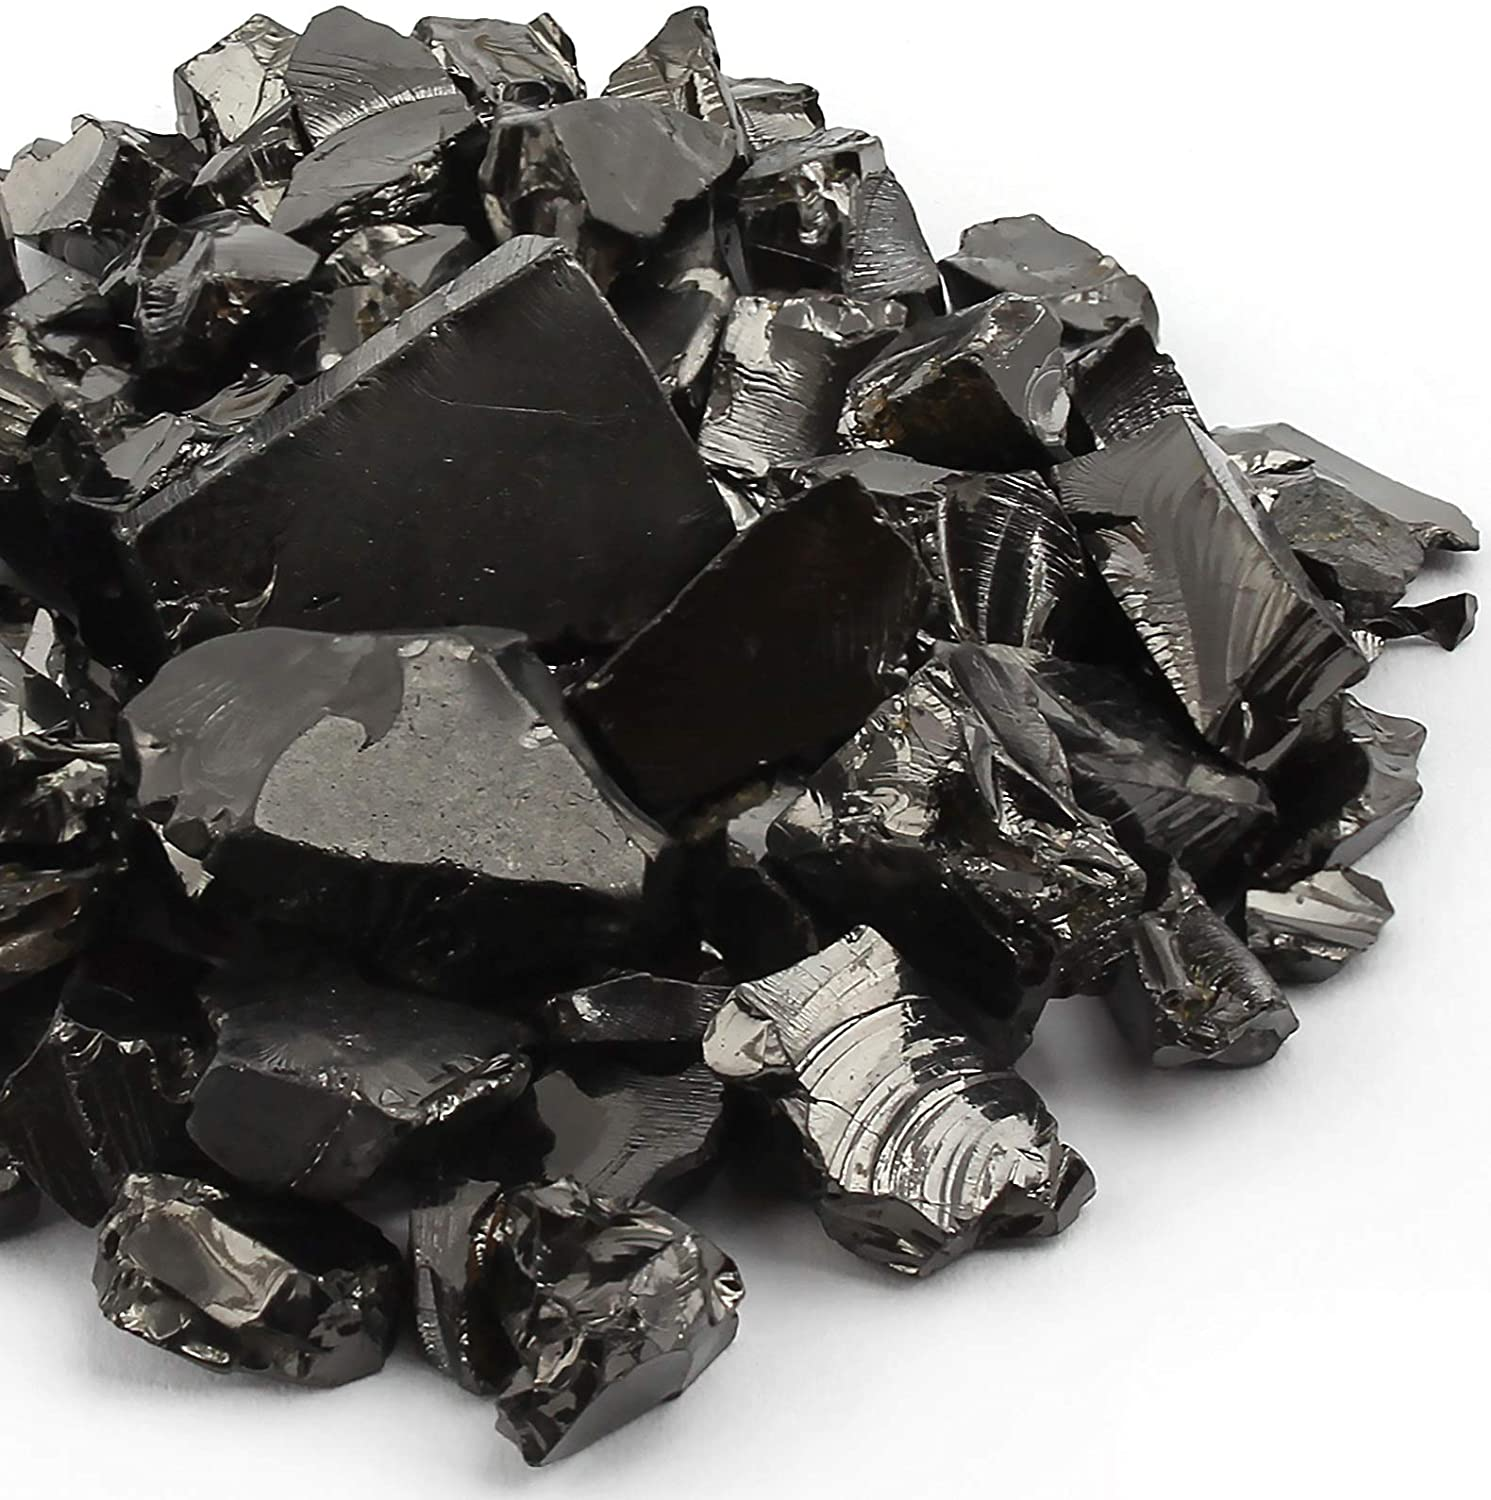 Shungite Meanings, Properties and Uses